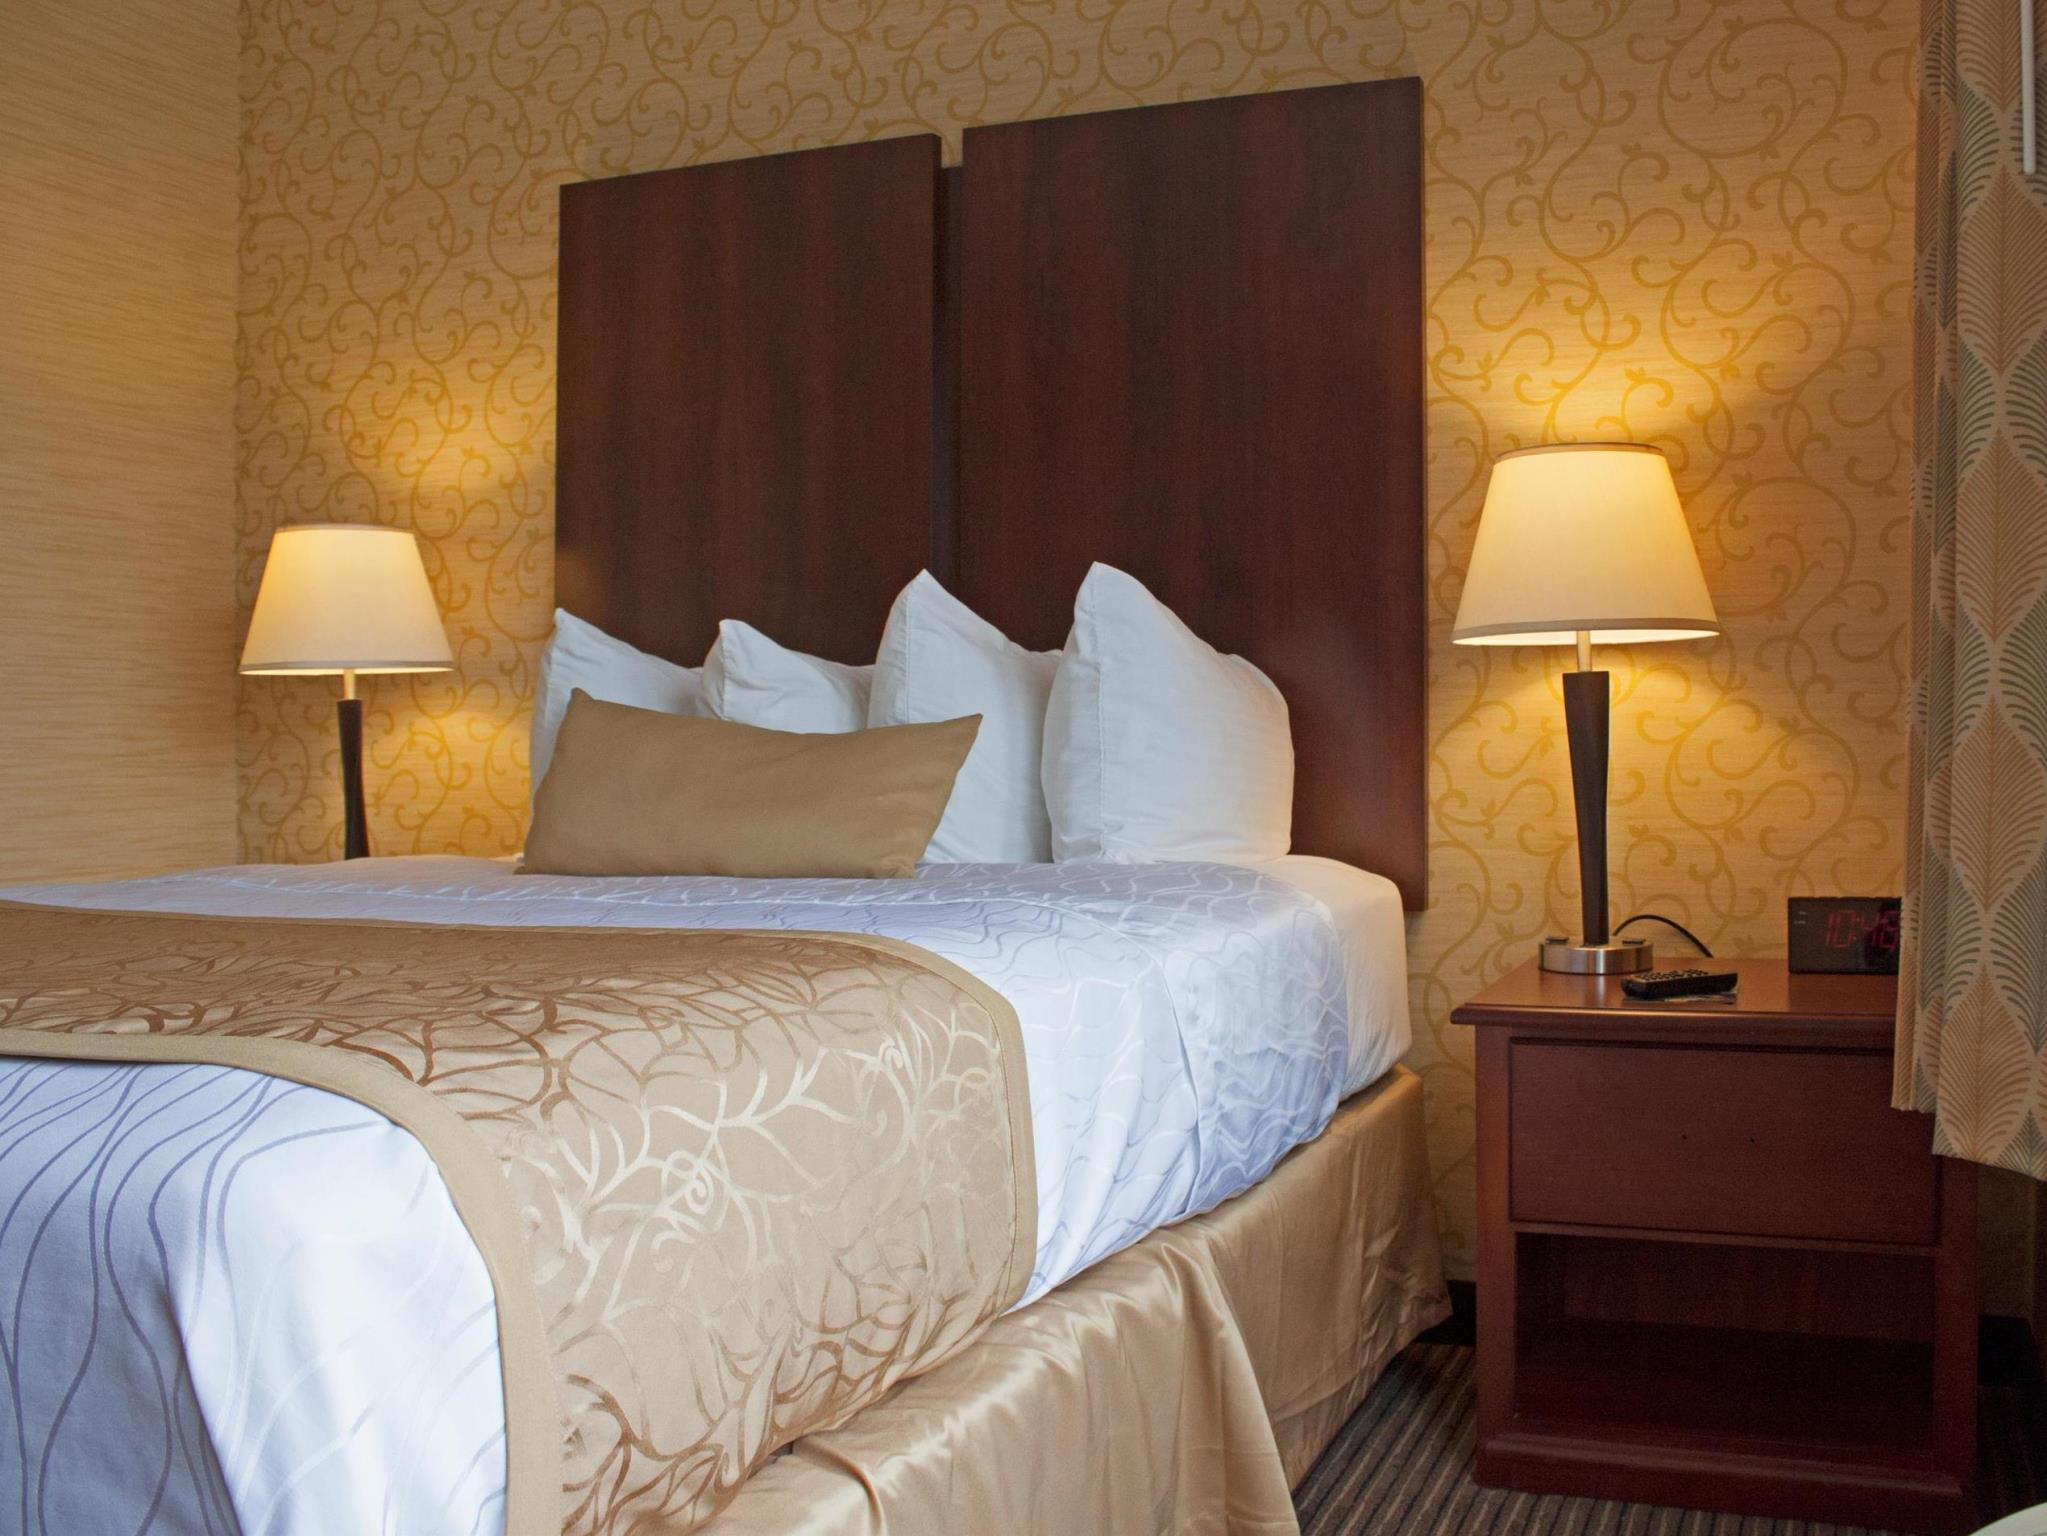 Suíte Deluxe com 1 cama Queen-size e sofá-cama - Não fumantes (Deluxe Suite with 1 Queen Bed and Sofabed - No Smoking)